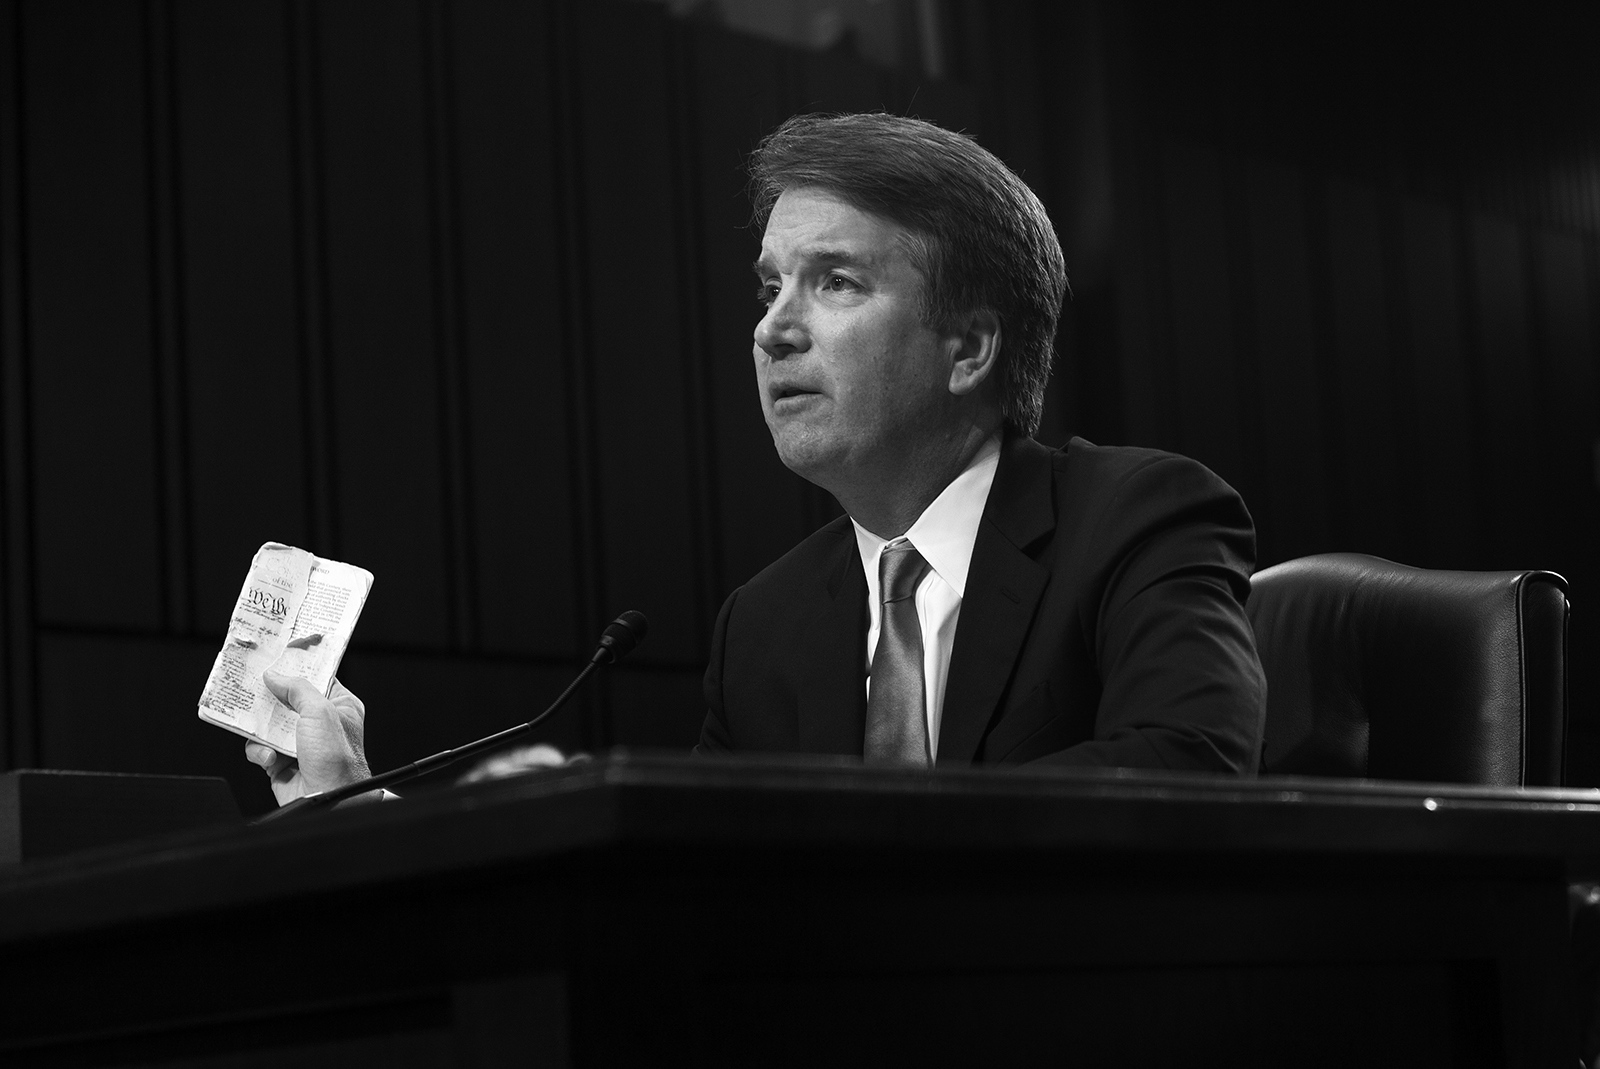 Brett Kavanaugh holds a copy of the U.S. Constitution during his confirmation hearing.